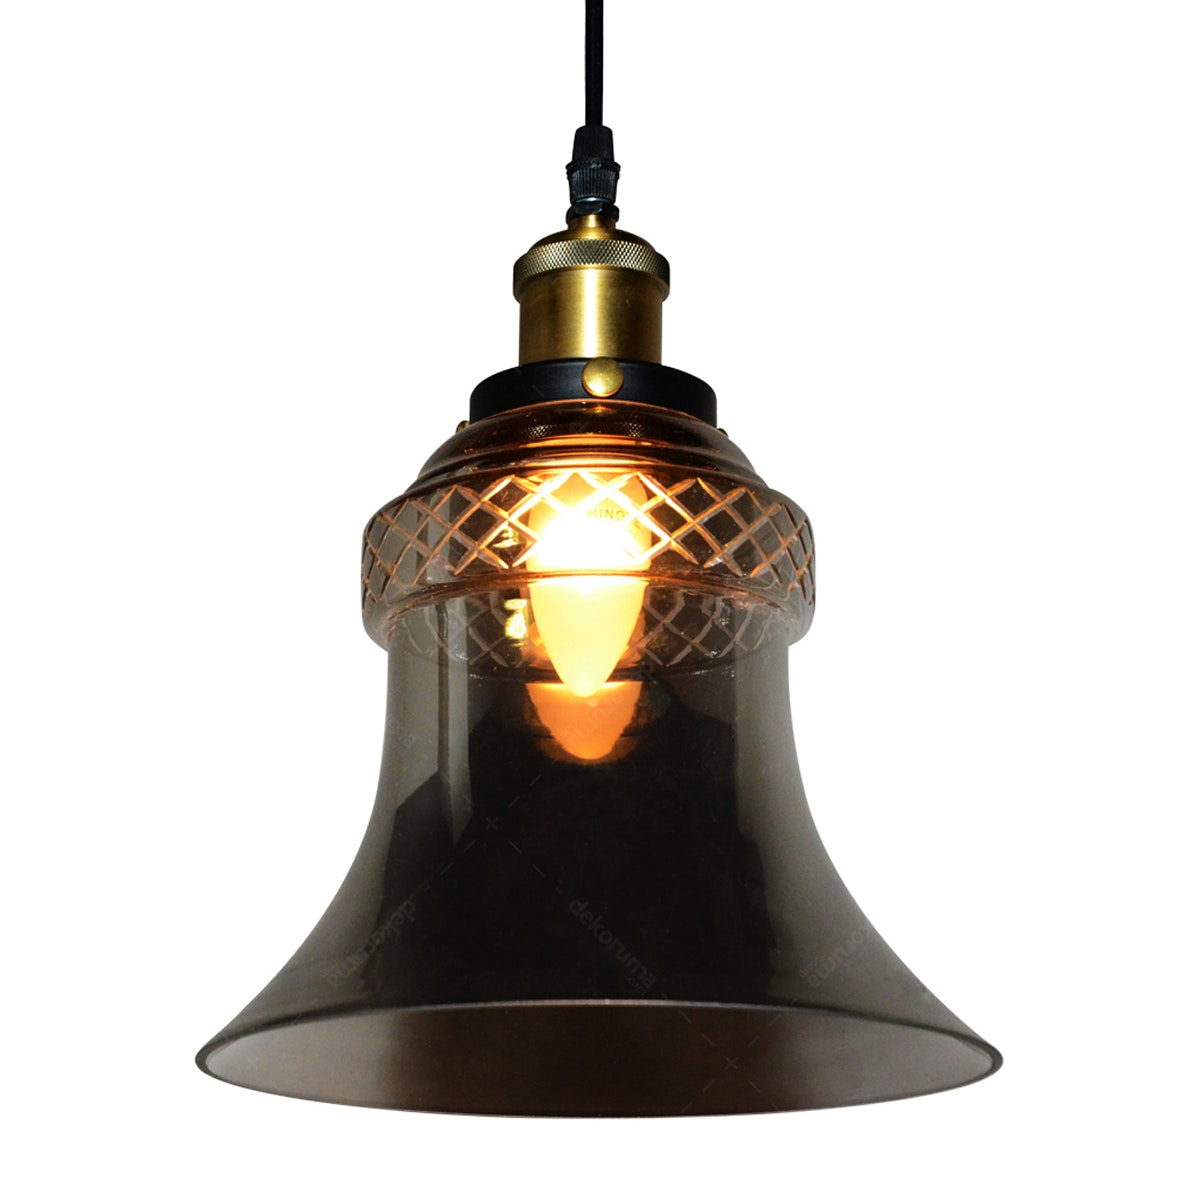 Lightology Chandelier / Lampu Gantung 8048-1 SMOKE GREY